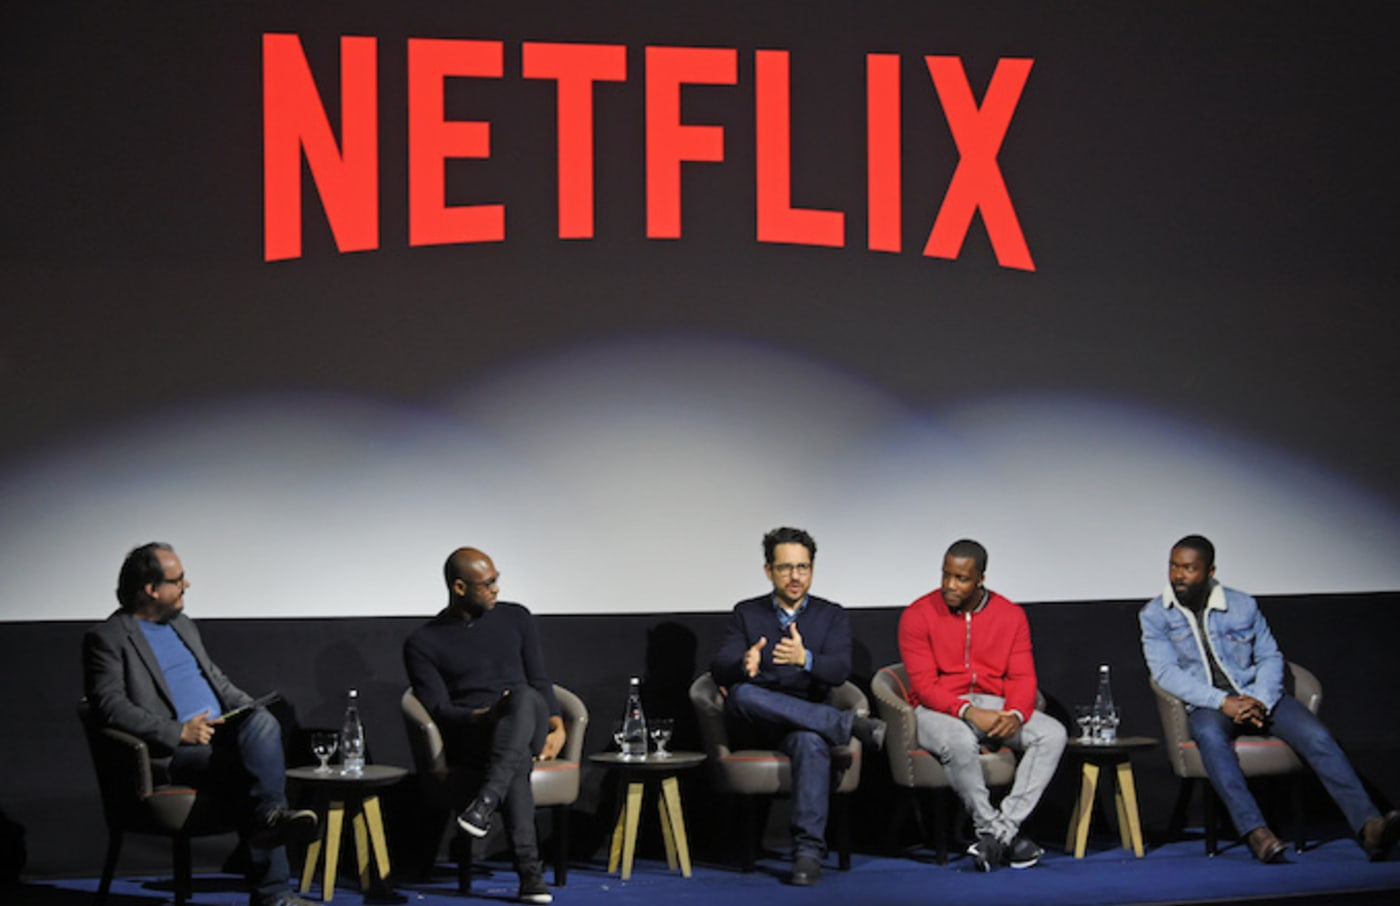 'The Cloverfield Paradox' hosted by Netflix